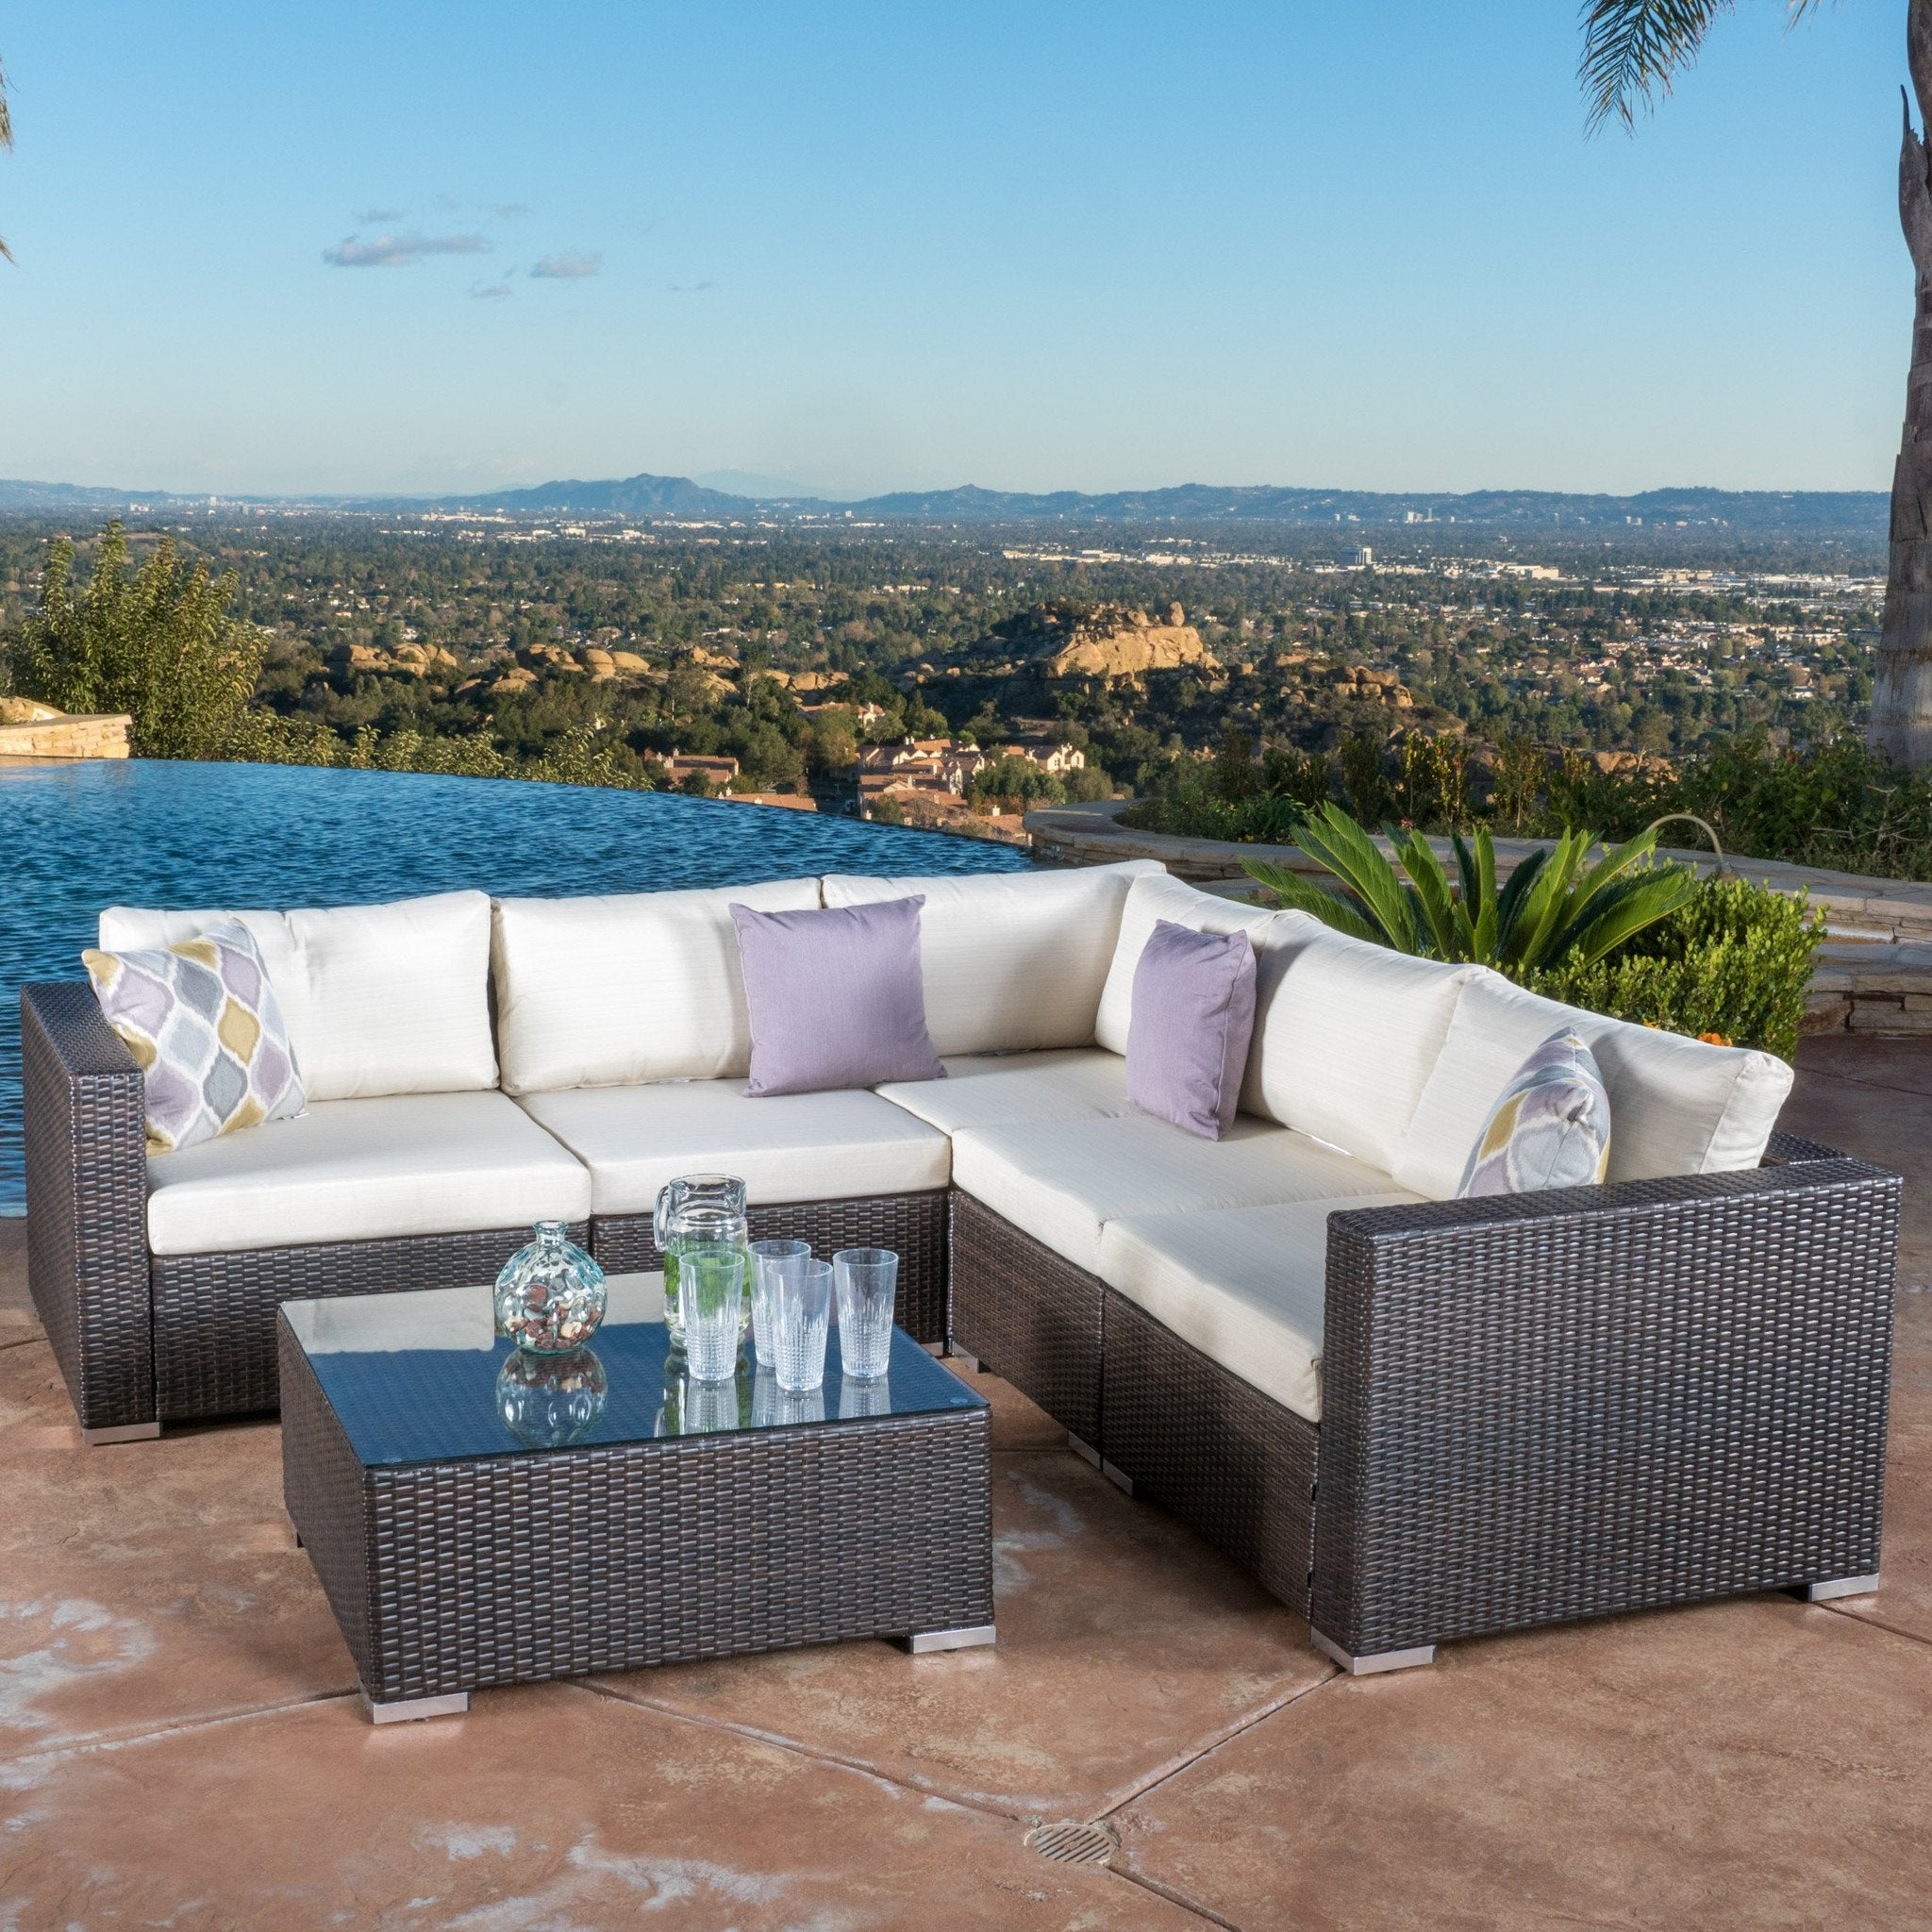 Outdoor Brown Wicker Seating Sectional Set Cushions foto